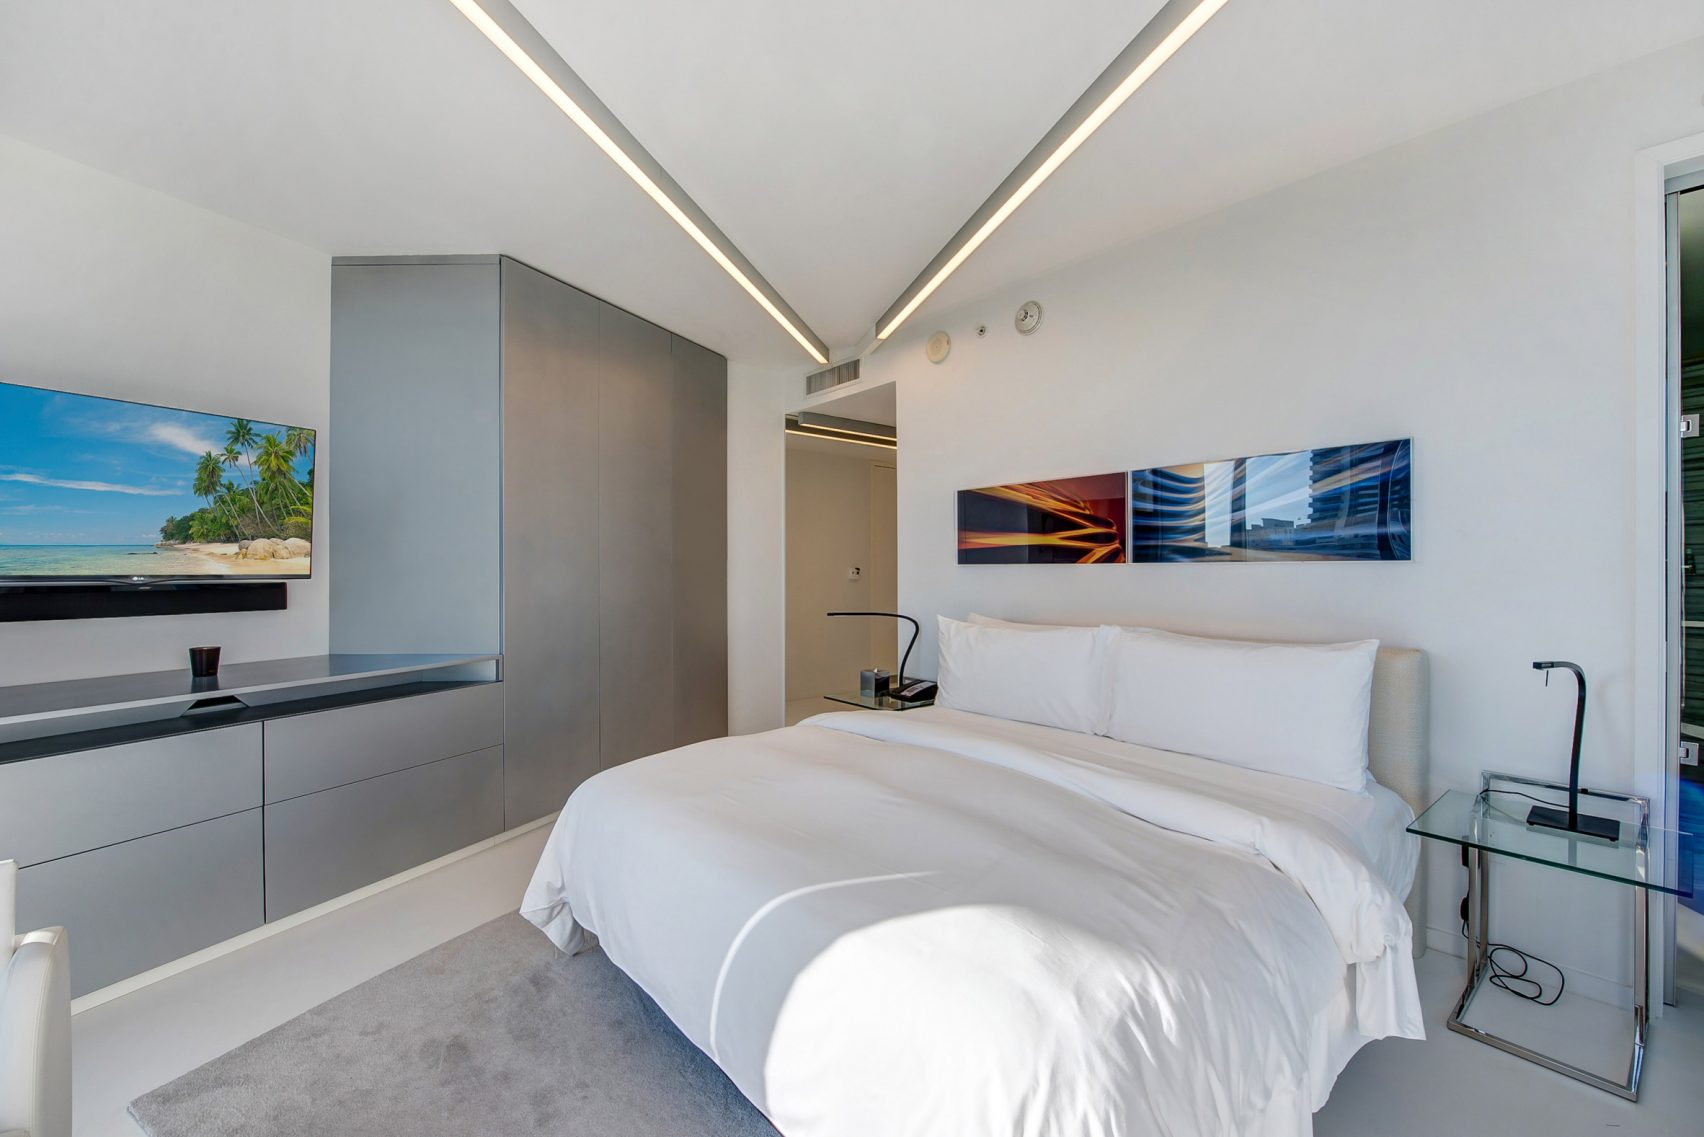 design, luxury, penthouse, american, miami, modern, zaha hadi, beach, architect, villa, billionaire, house, usa, bedroom